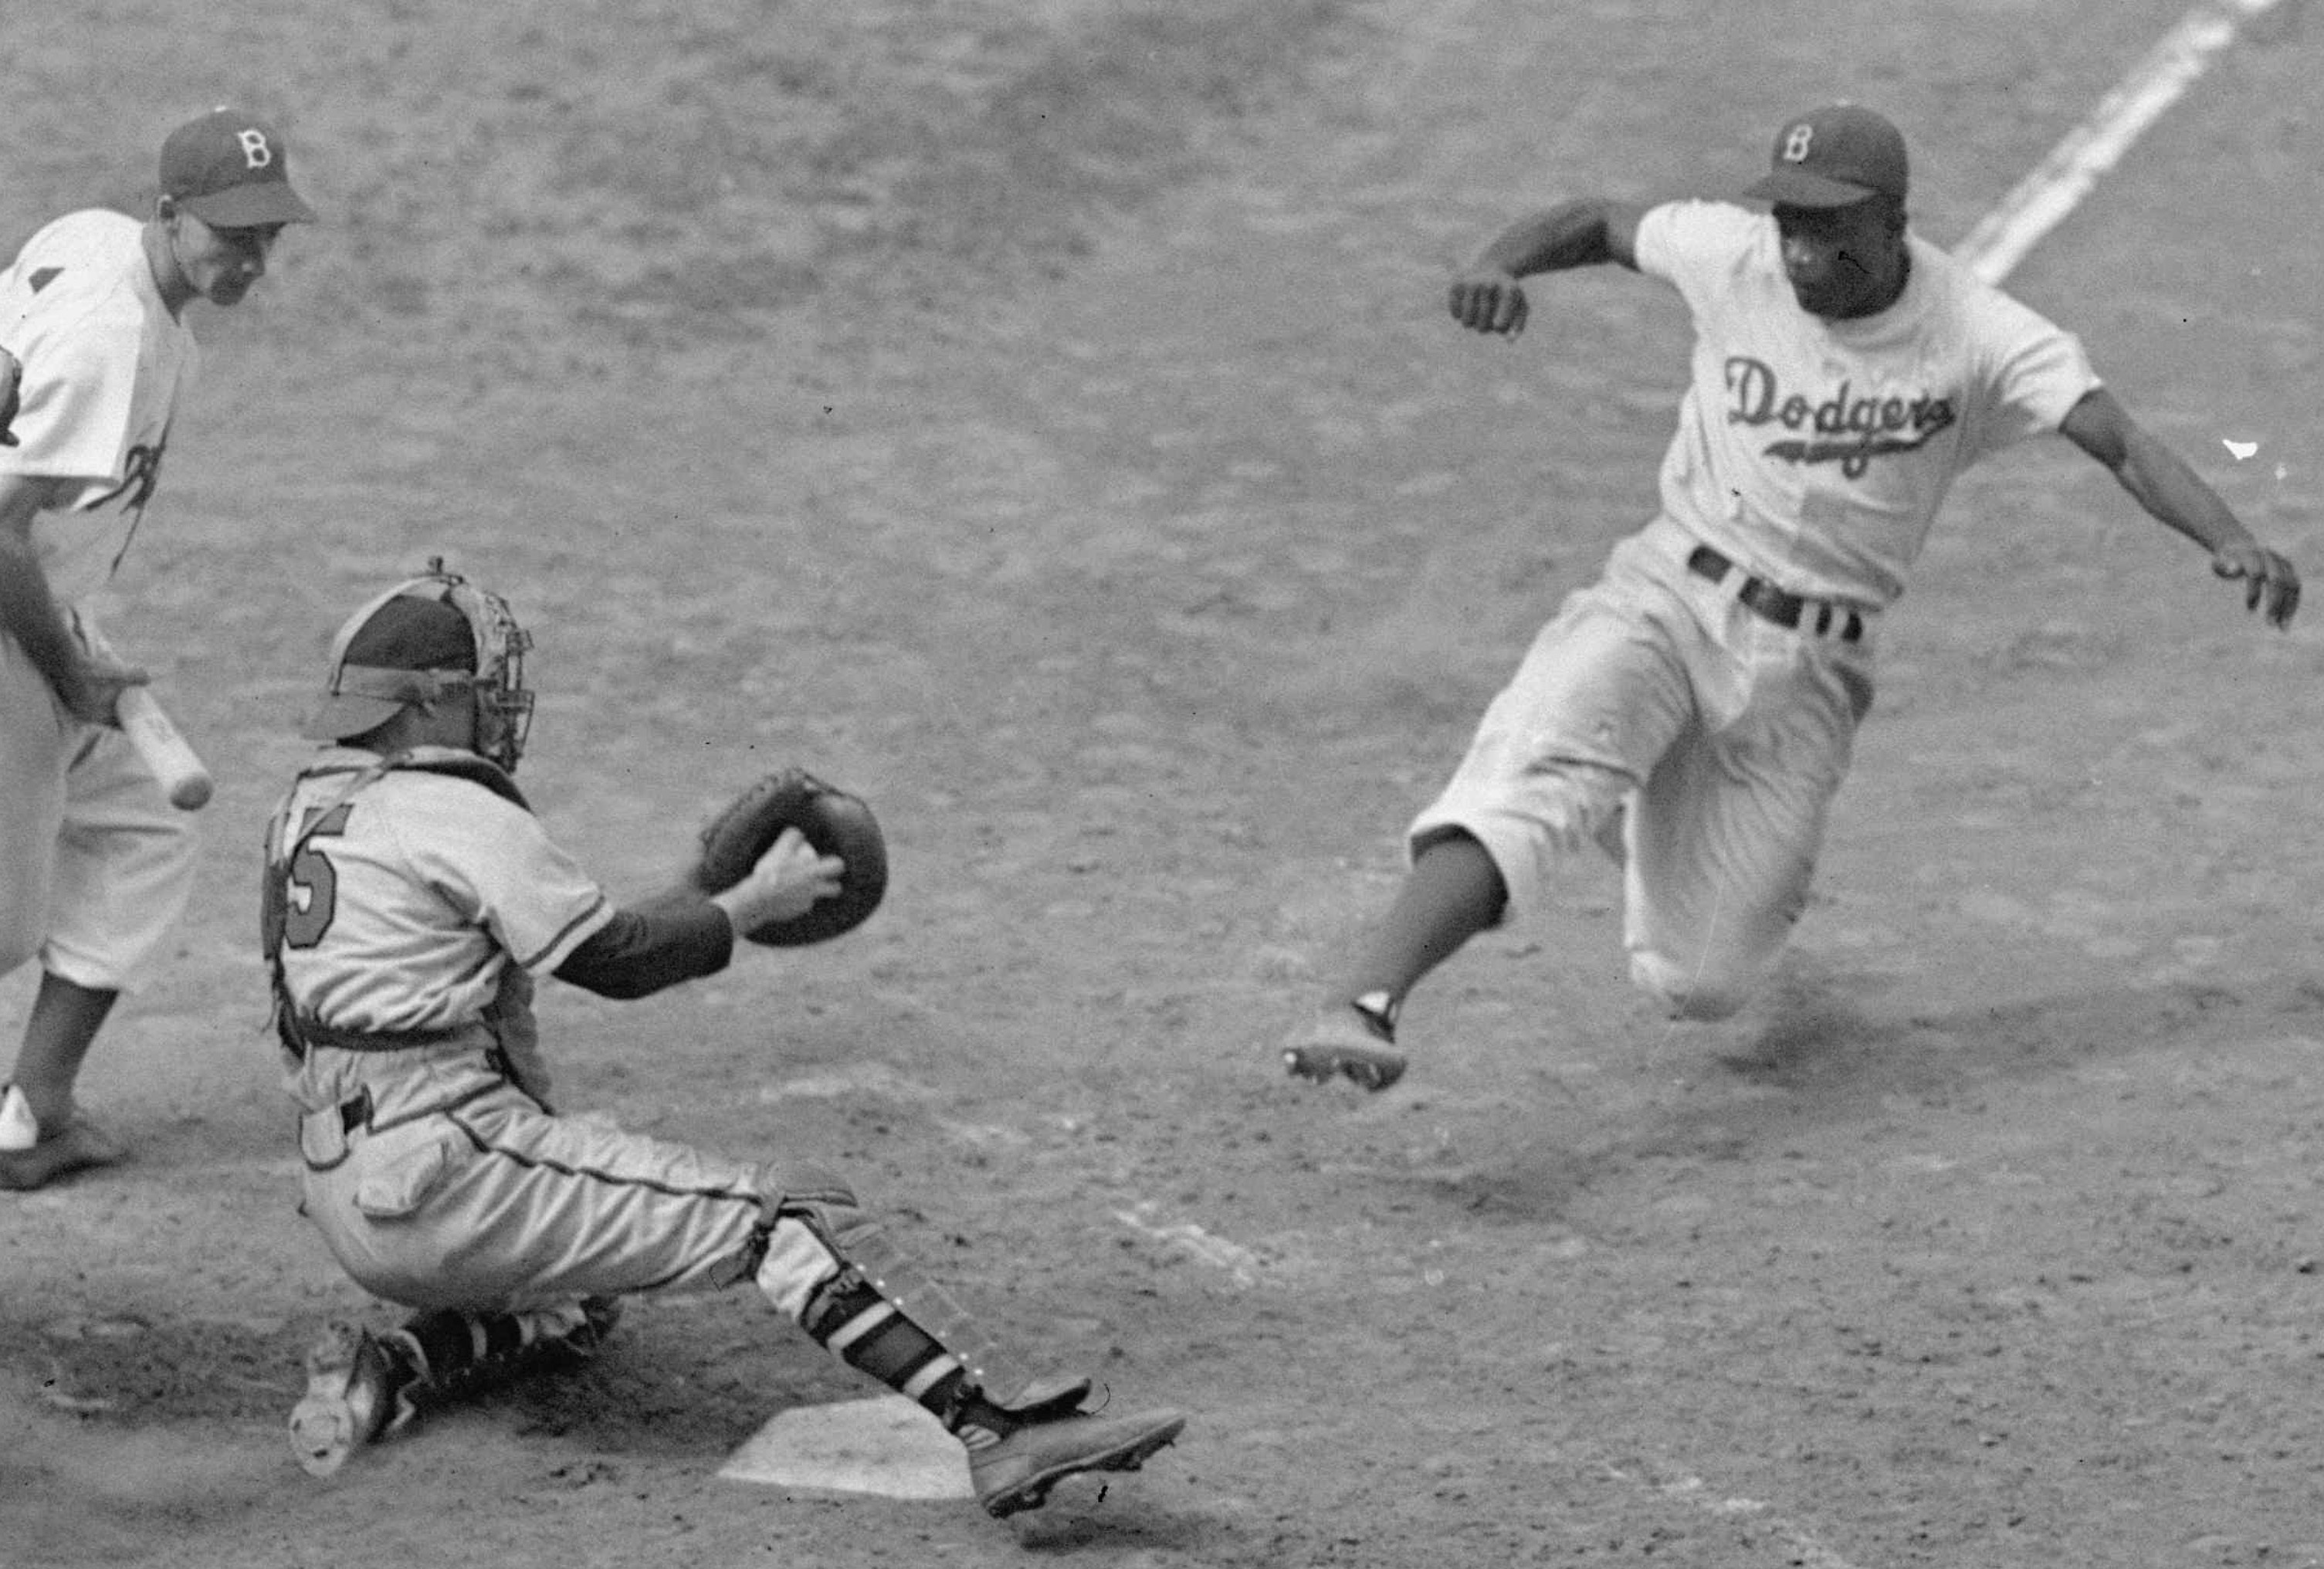 MLB collectively honors Jackie Robinson on Monday, the 66th anniversary of his major league debut. (AP)